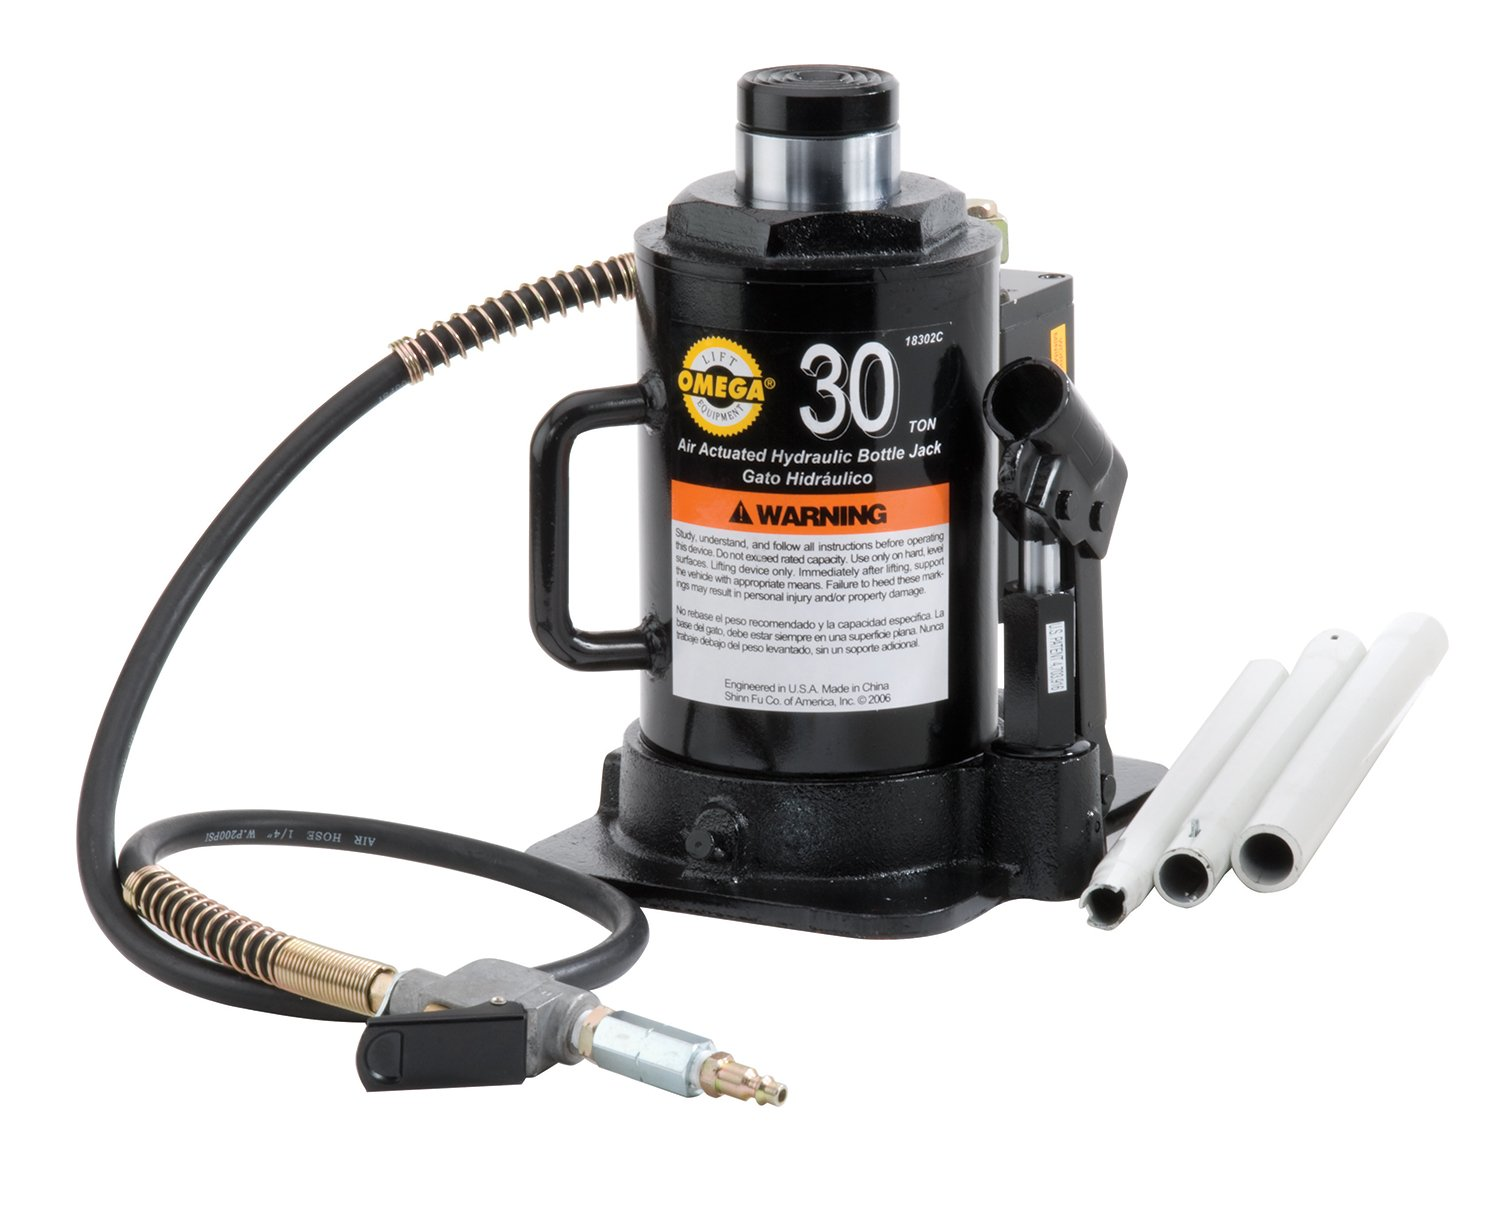 Amazon.com: Omega 18302C Black Hydraulic Bottle Jack - 30 Ton Capacity: Automotive